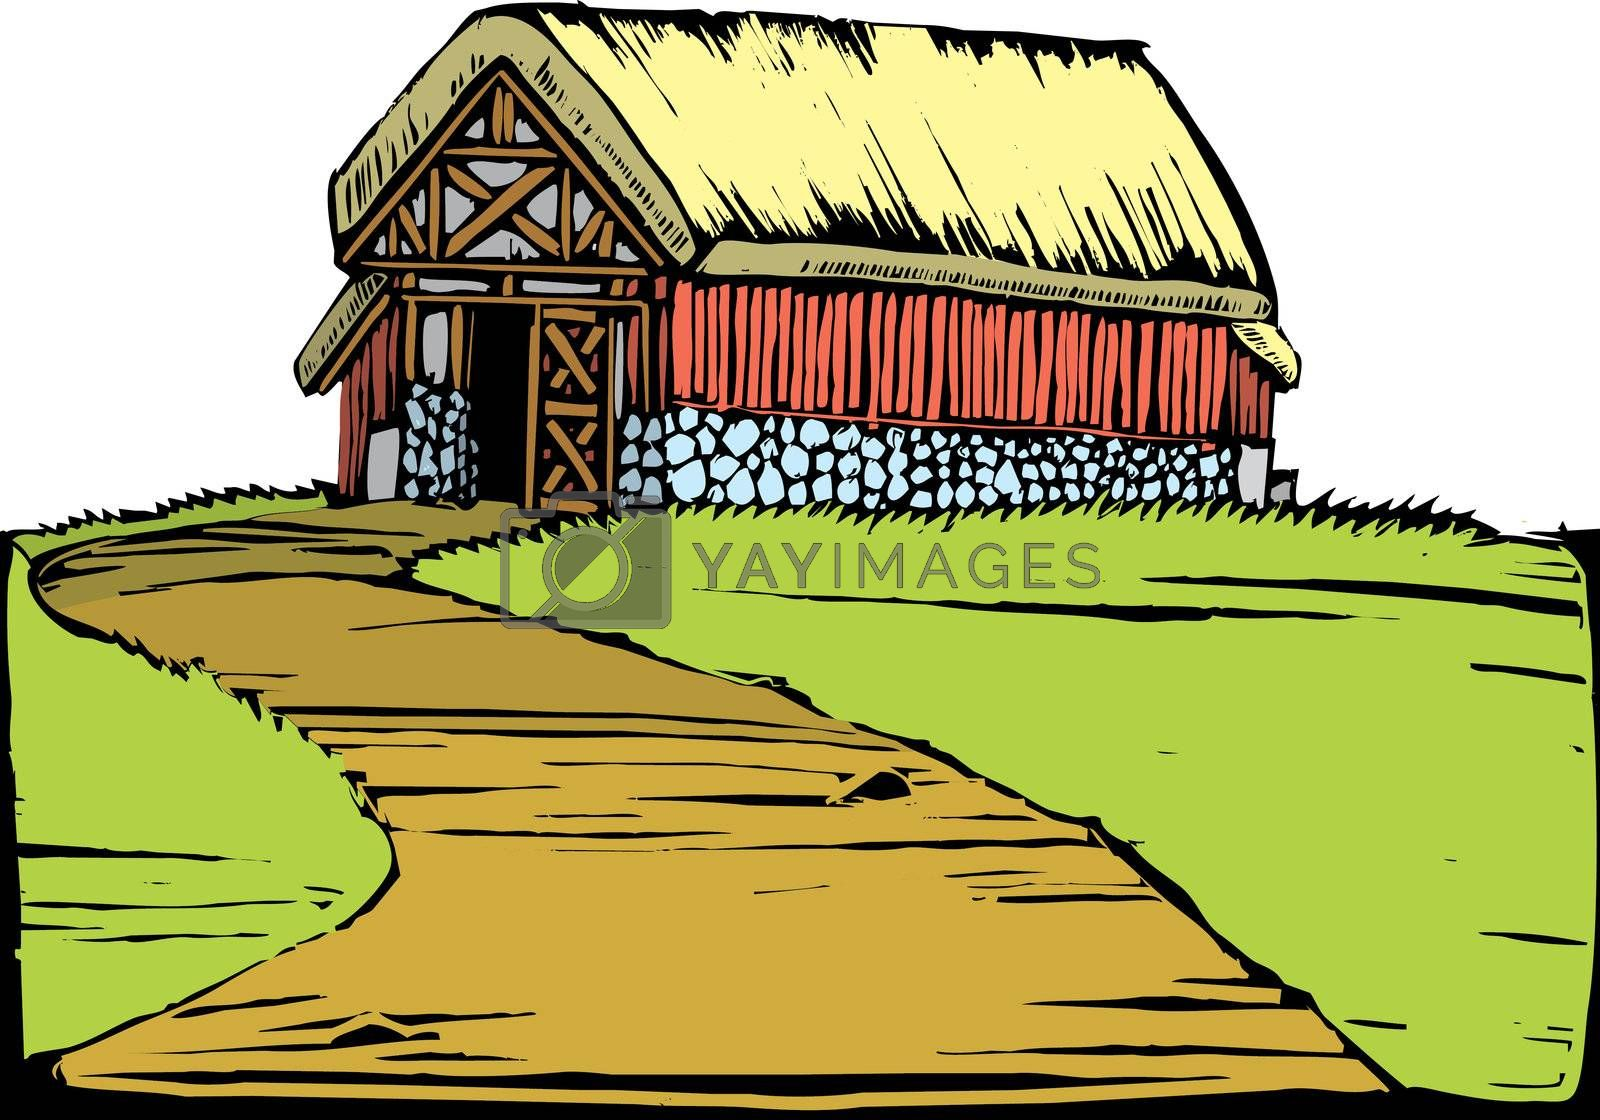 Scratchboard image of a red barn with a turf roof sitting on a hill.